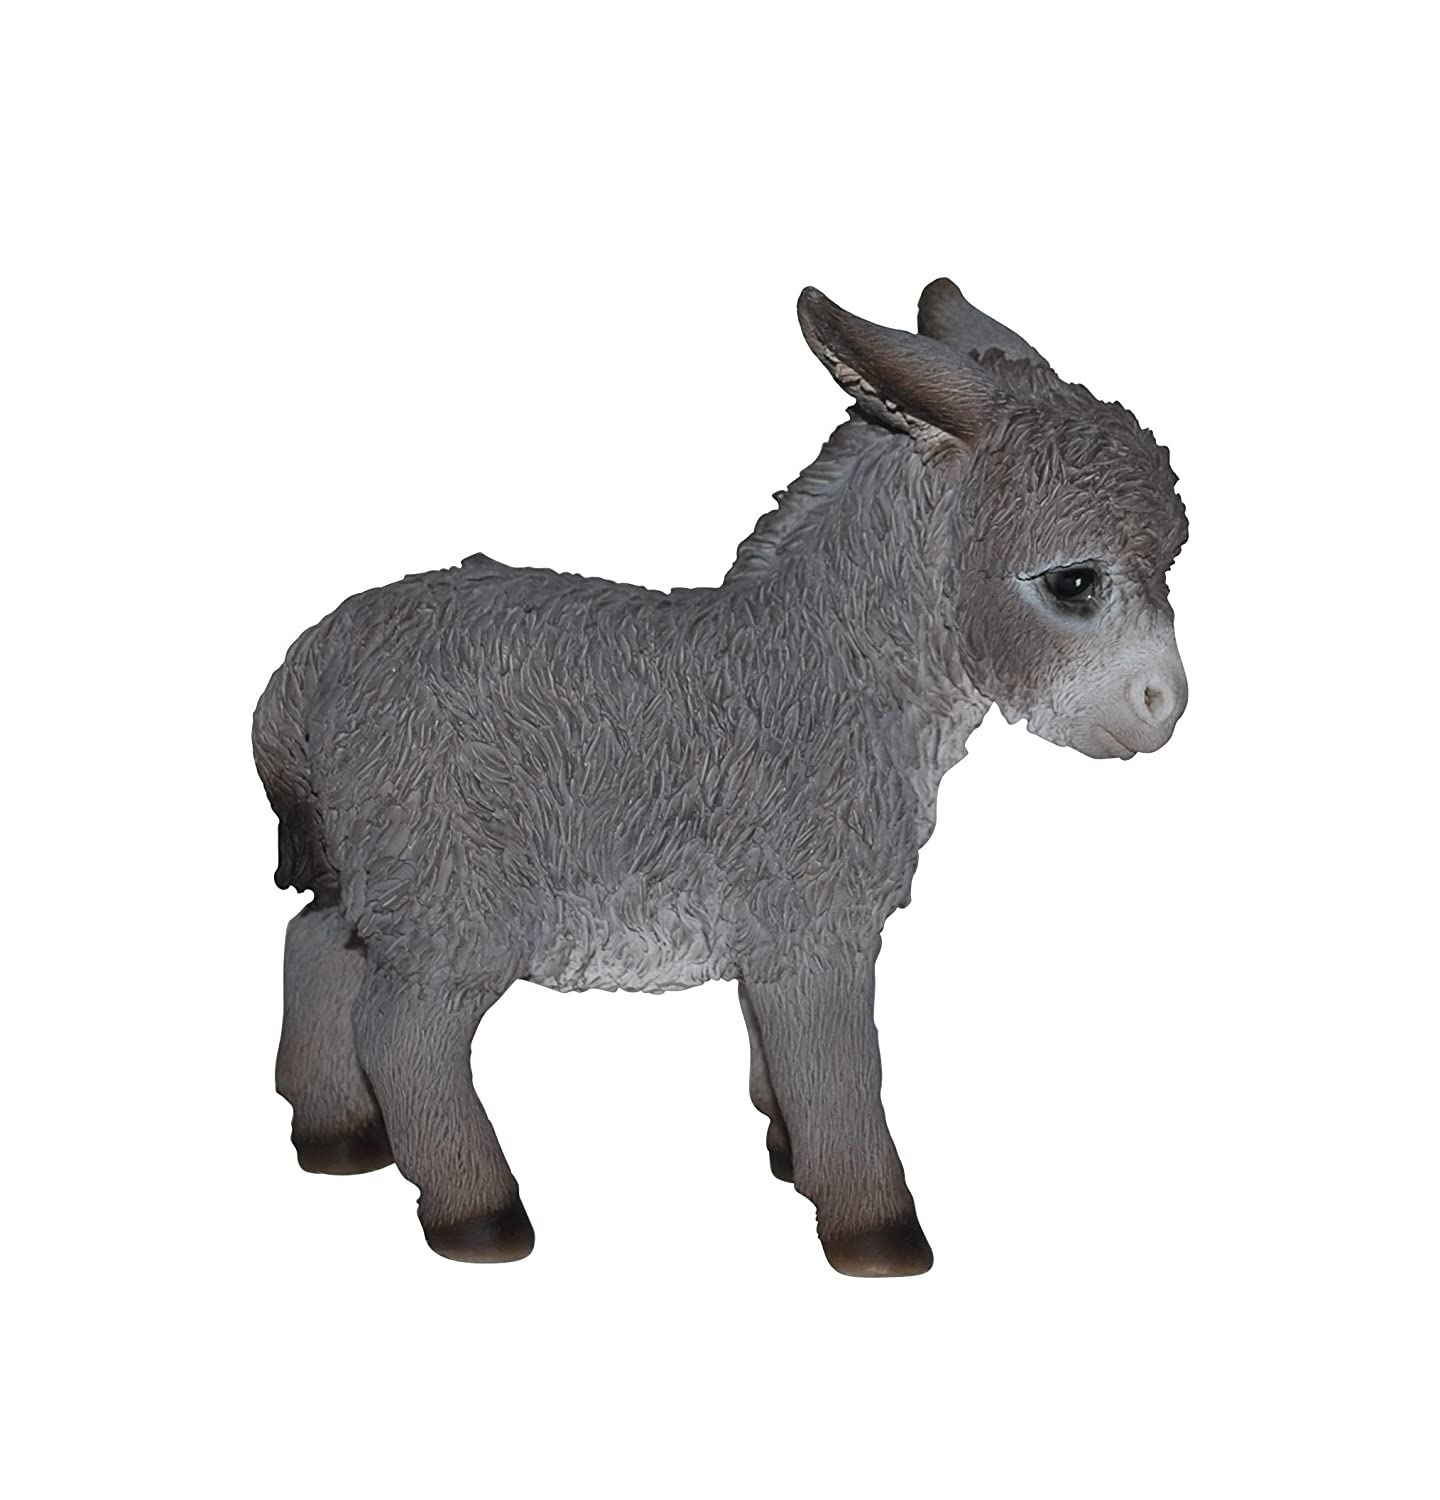 Vivid Arts XRL BDON D Size D Baby Donkey Statue   Grey: XRL BDON D:  Amazon.co.uk: Garden U0026 Outdoors